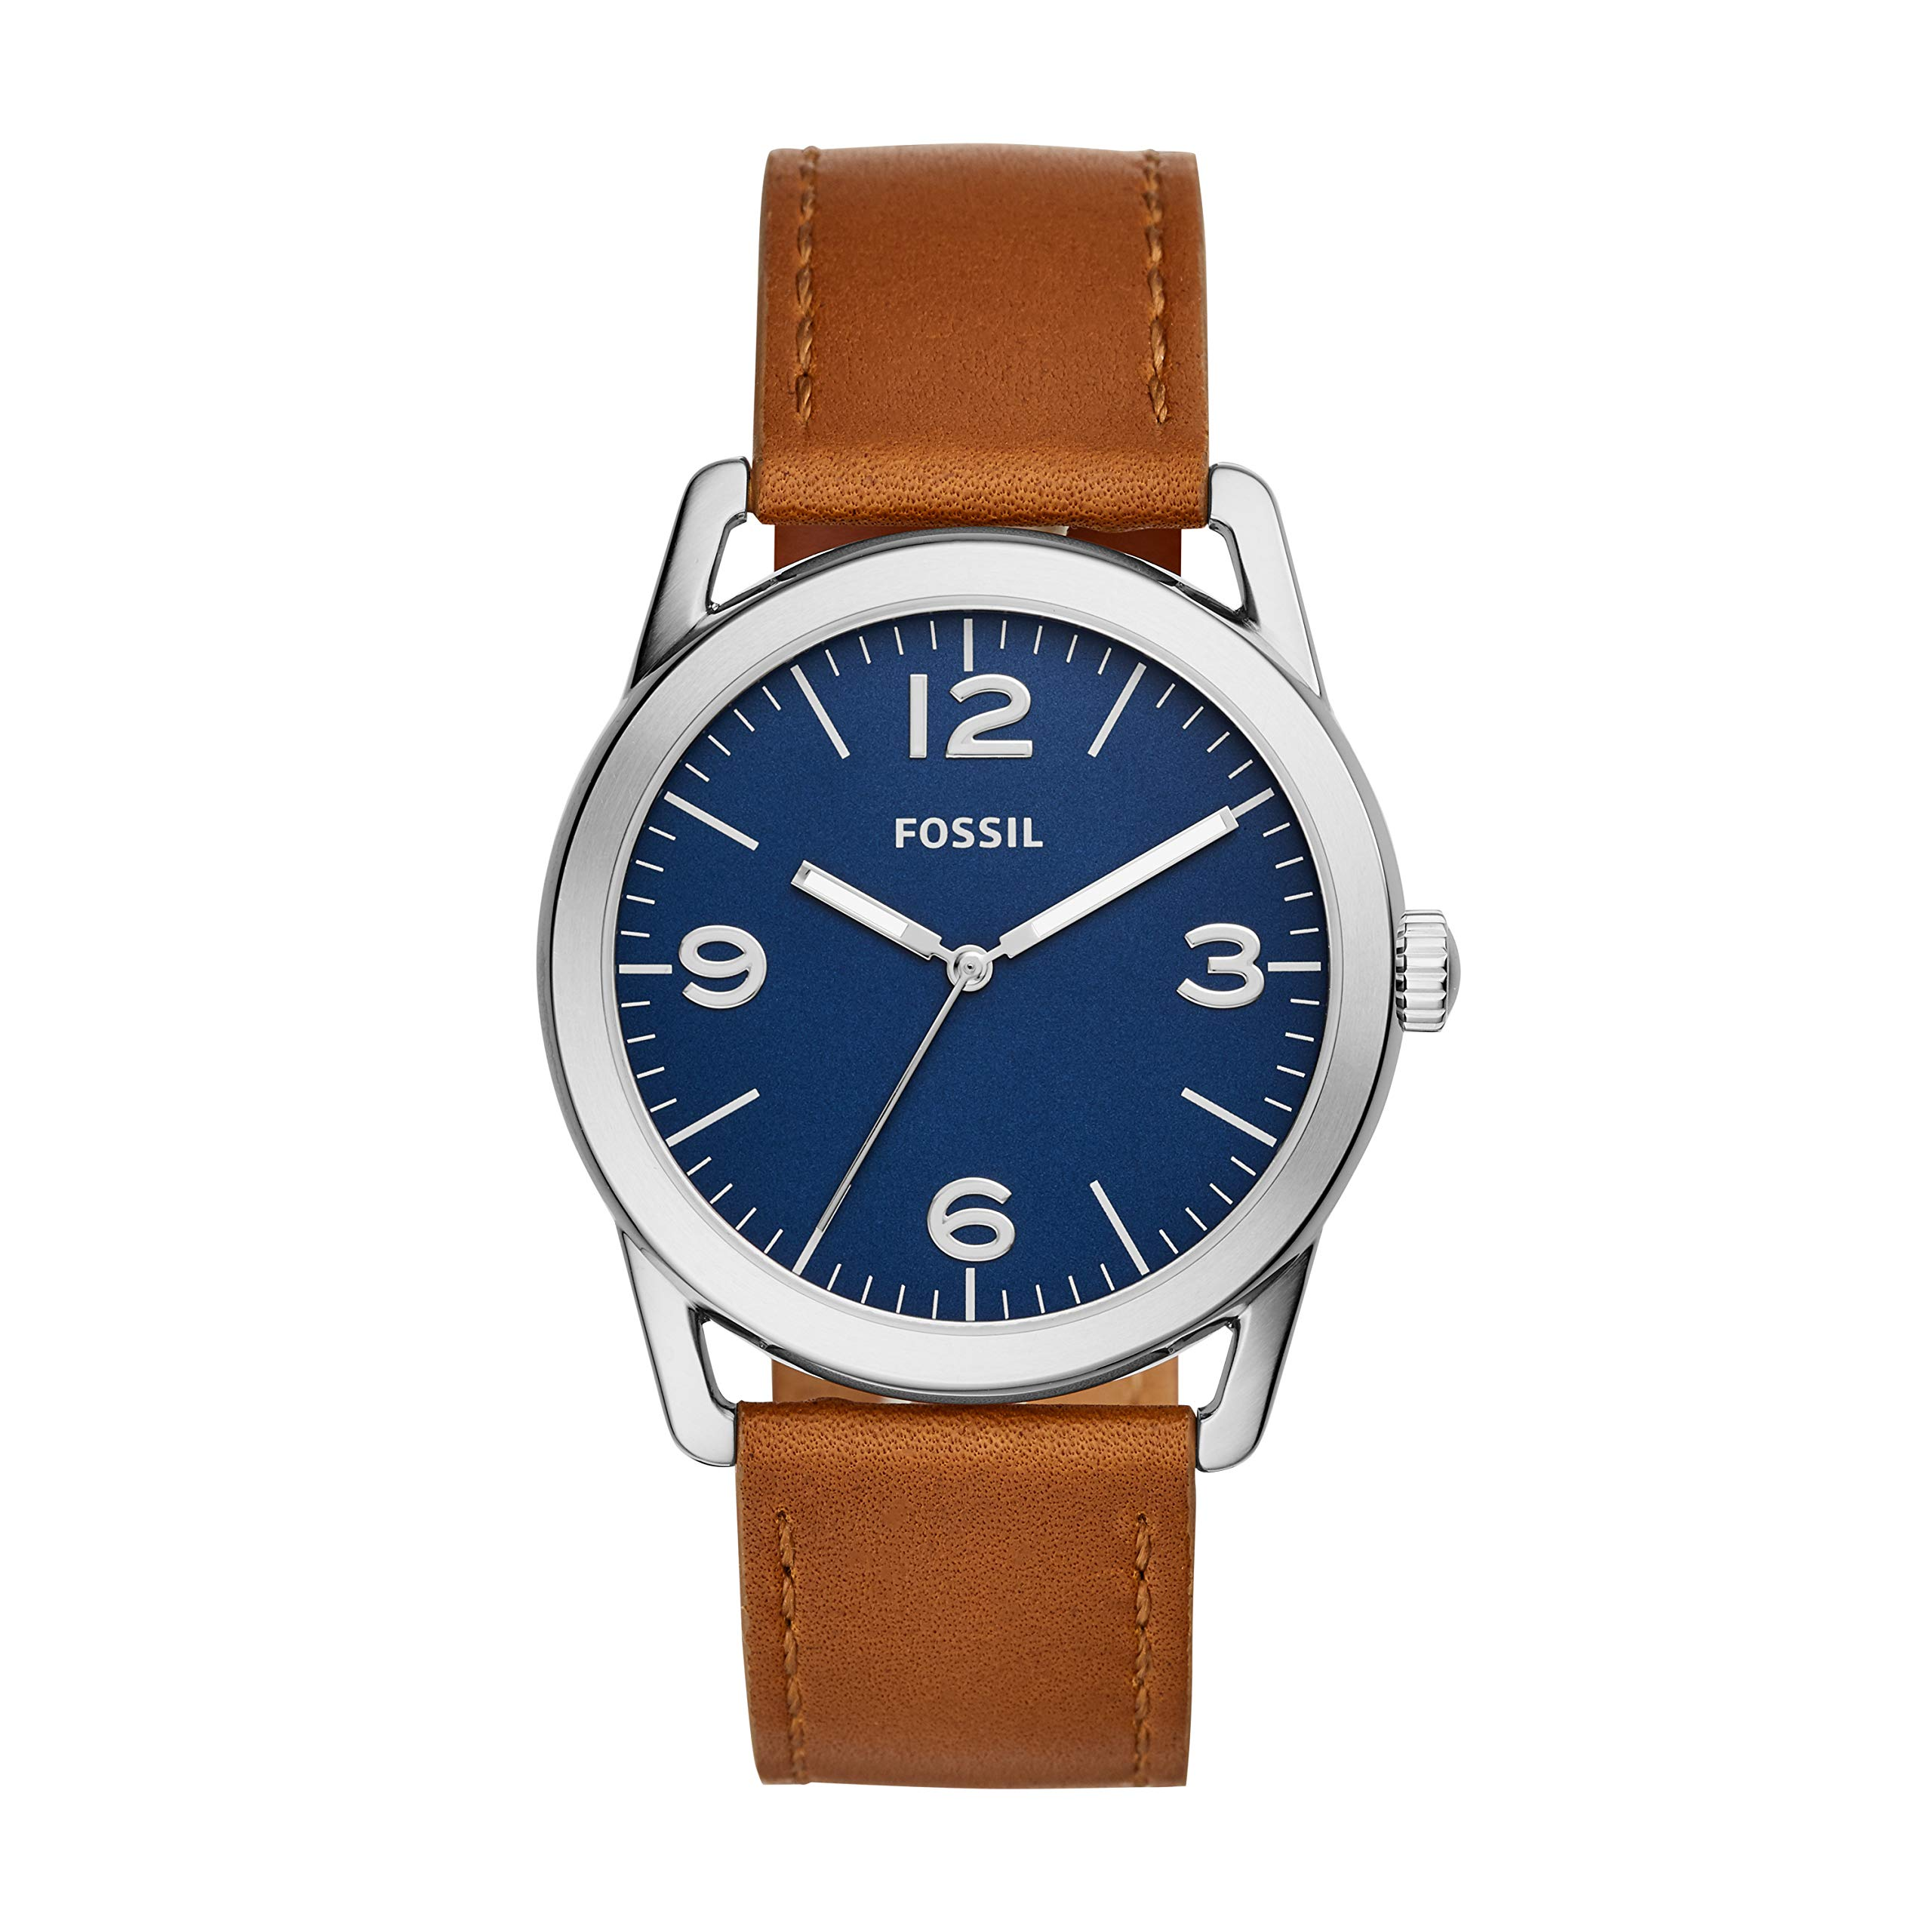 Fossil Men's 'Ledger' Quartz Stainless Steel and Leather Watch, Color:Brown (Model: BQ2304) by Fossil